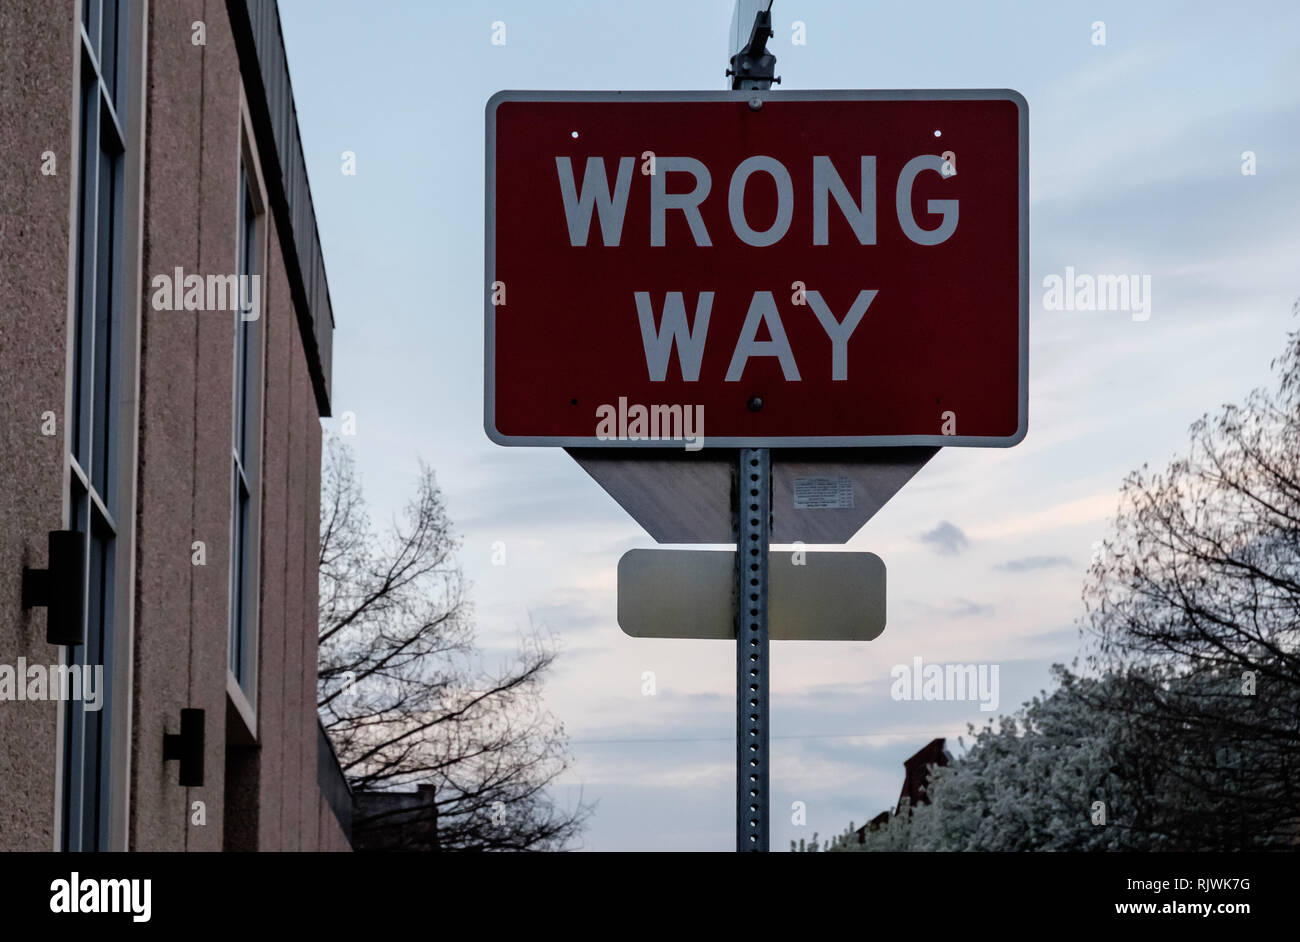 Wrong Way red traffic sign at Downtown McKinney, Texas.  March 2018 - Stock Image